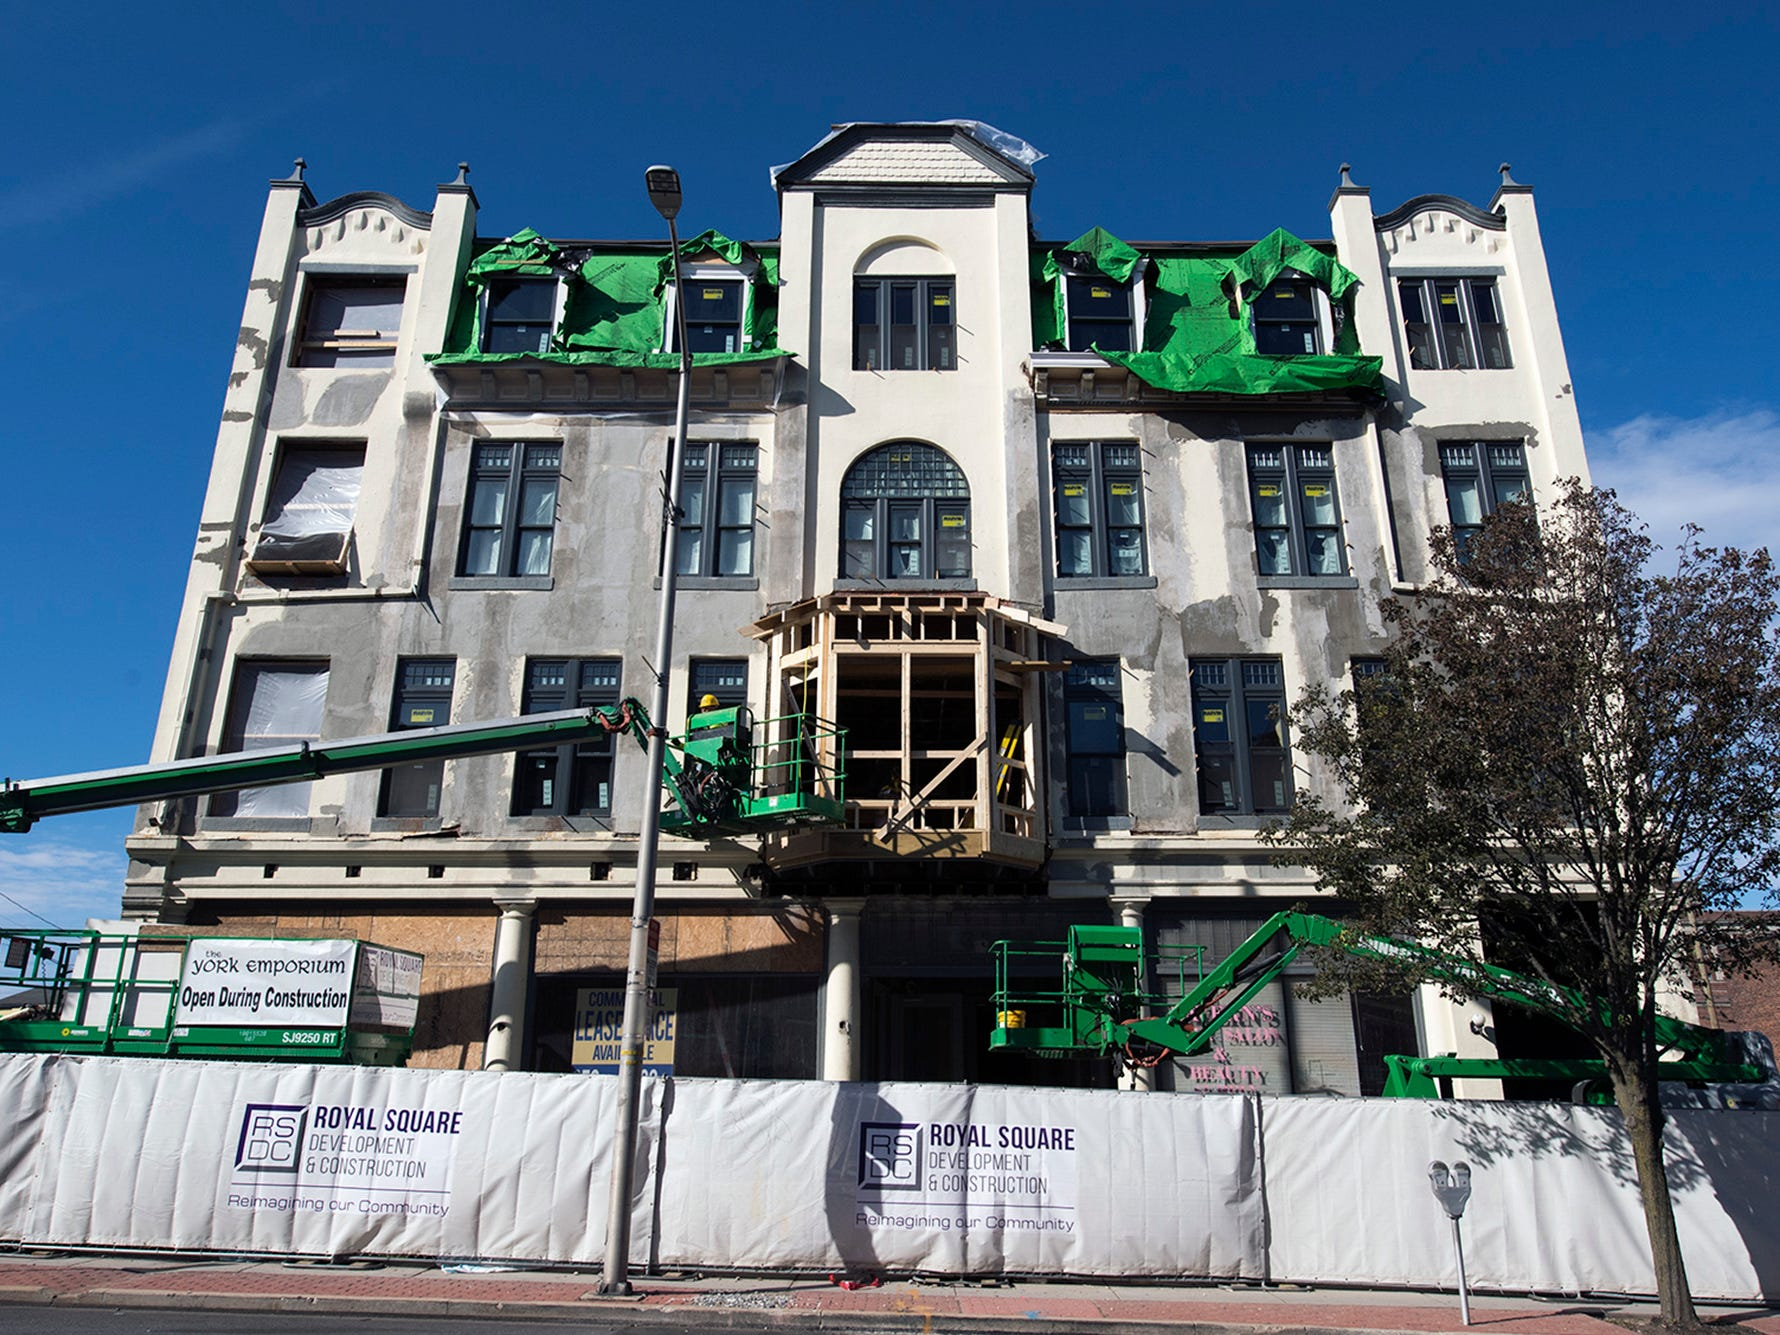 The Doll Building at 337 W. Market Street in York is nearing completion. Built in the 1880s, the structure was once home to The City Hotel and later Doll Pontiac.